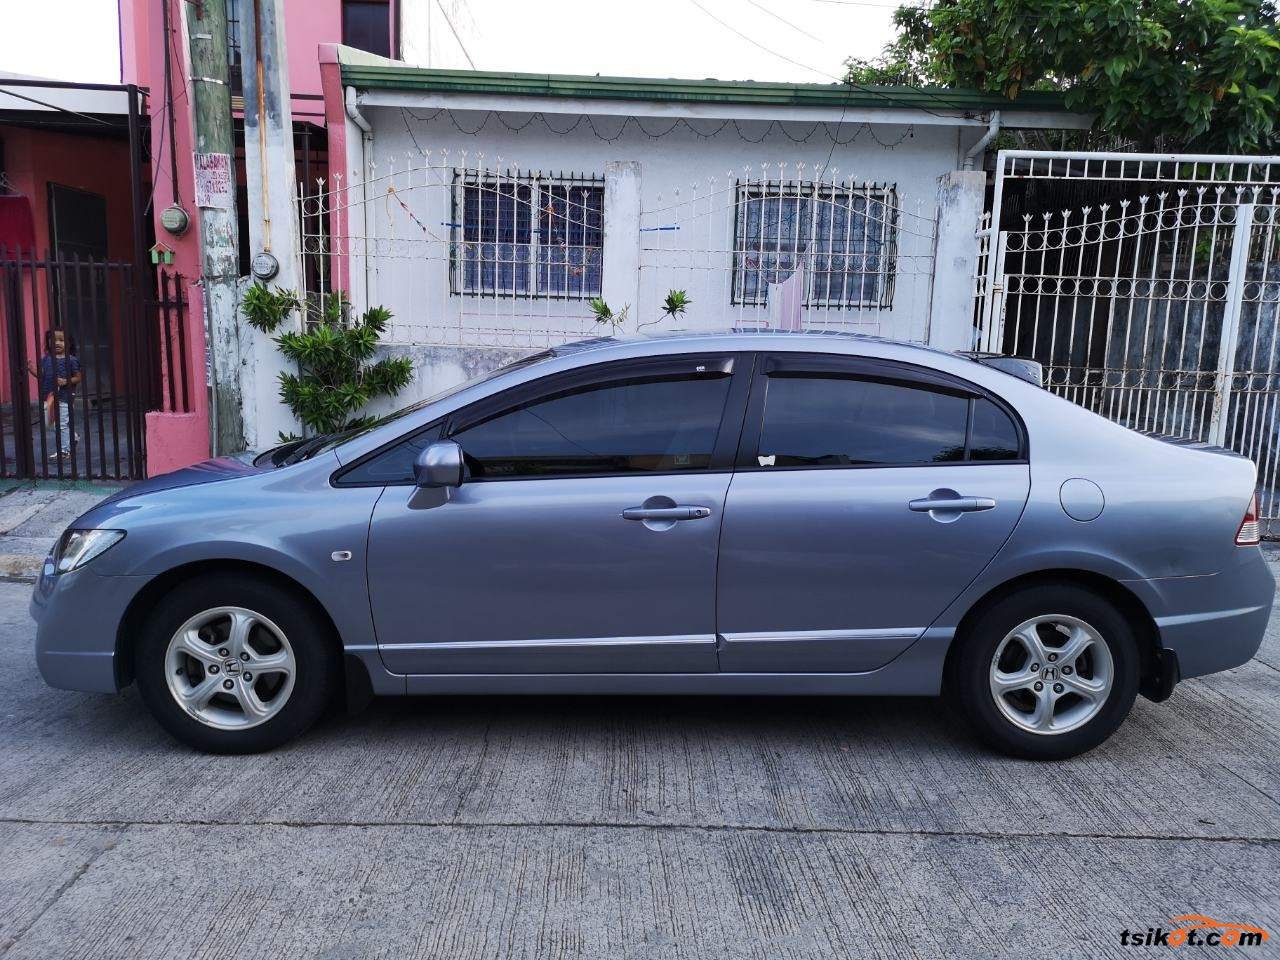 Honda Civic 2007 - 1